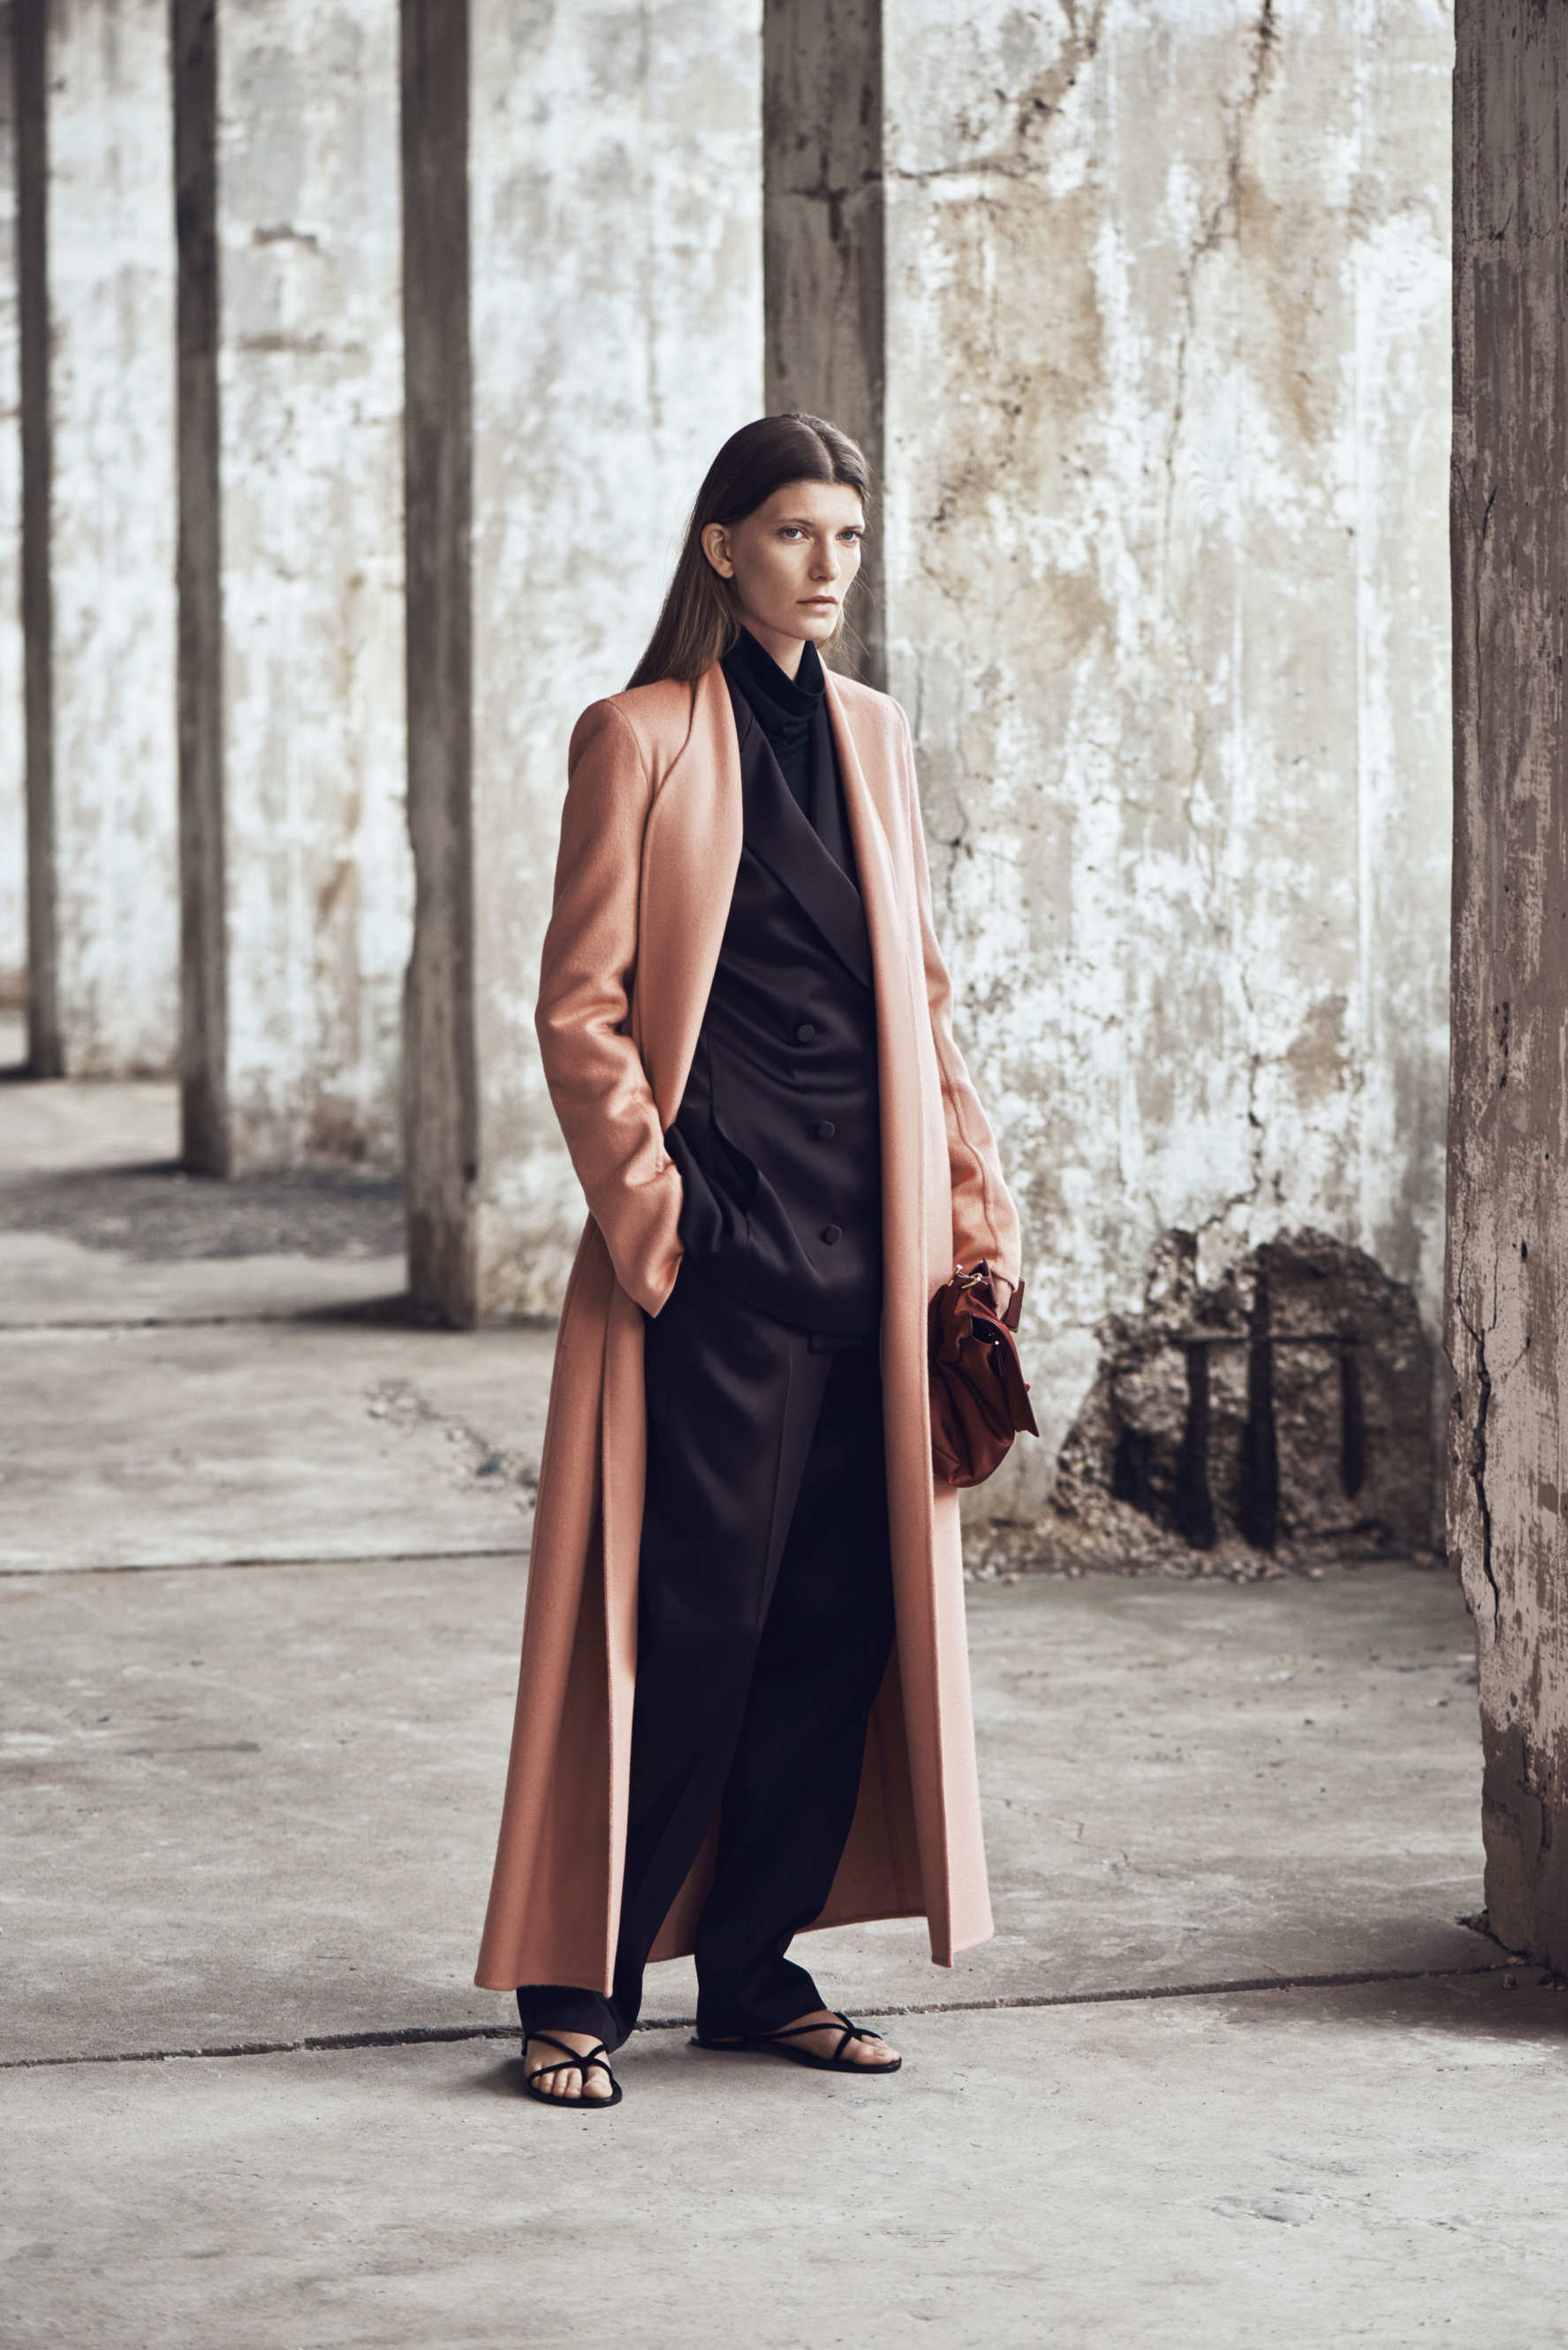 The Row 2016 resort collection